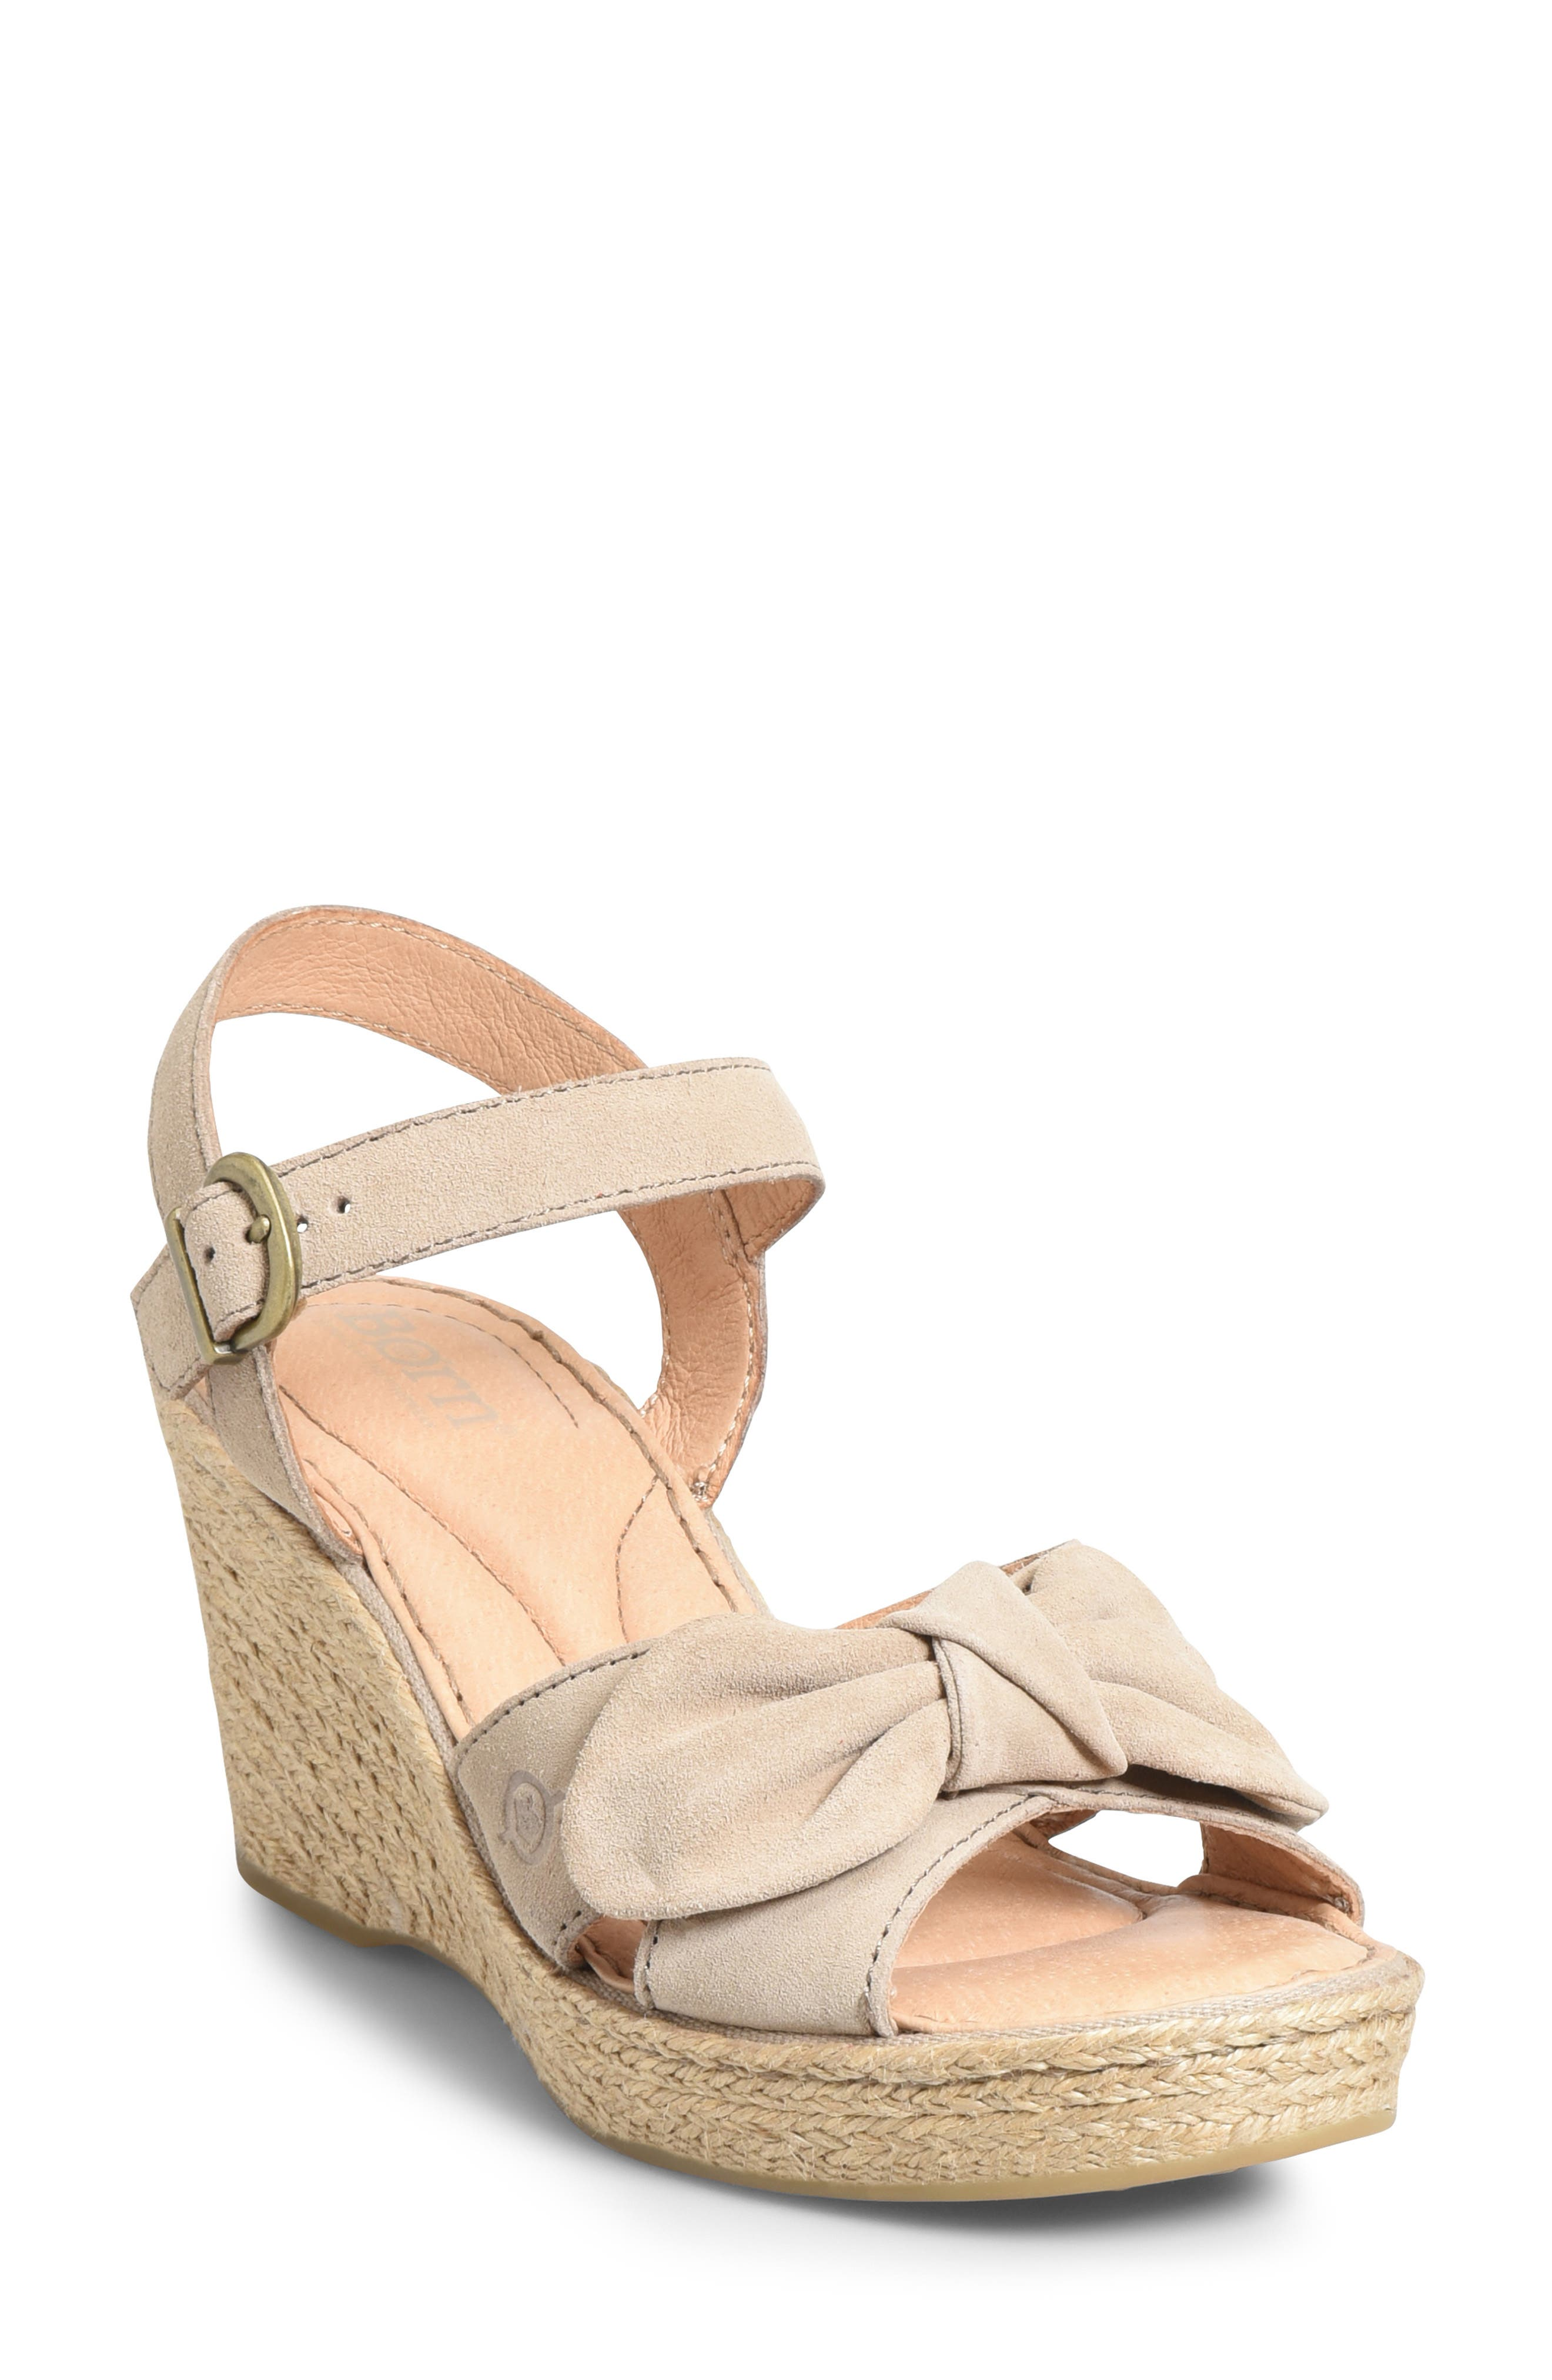 B?rn Monticello Knotted Wedge Sandal, Beige